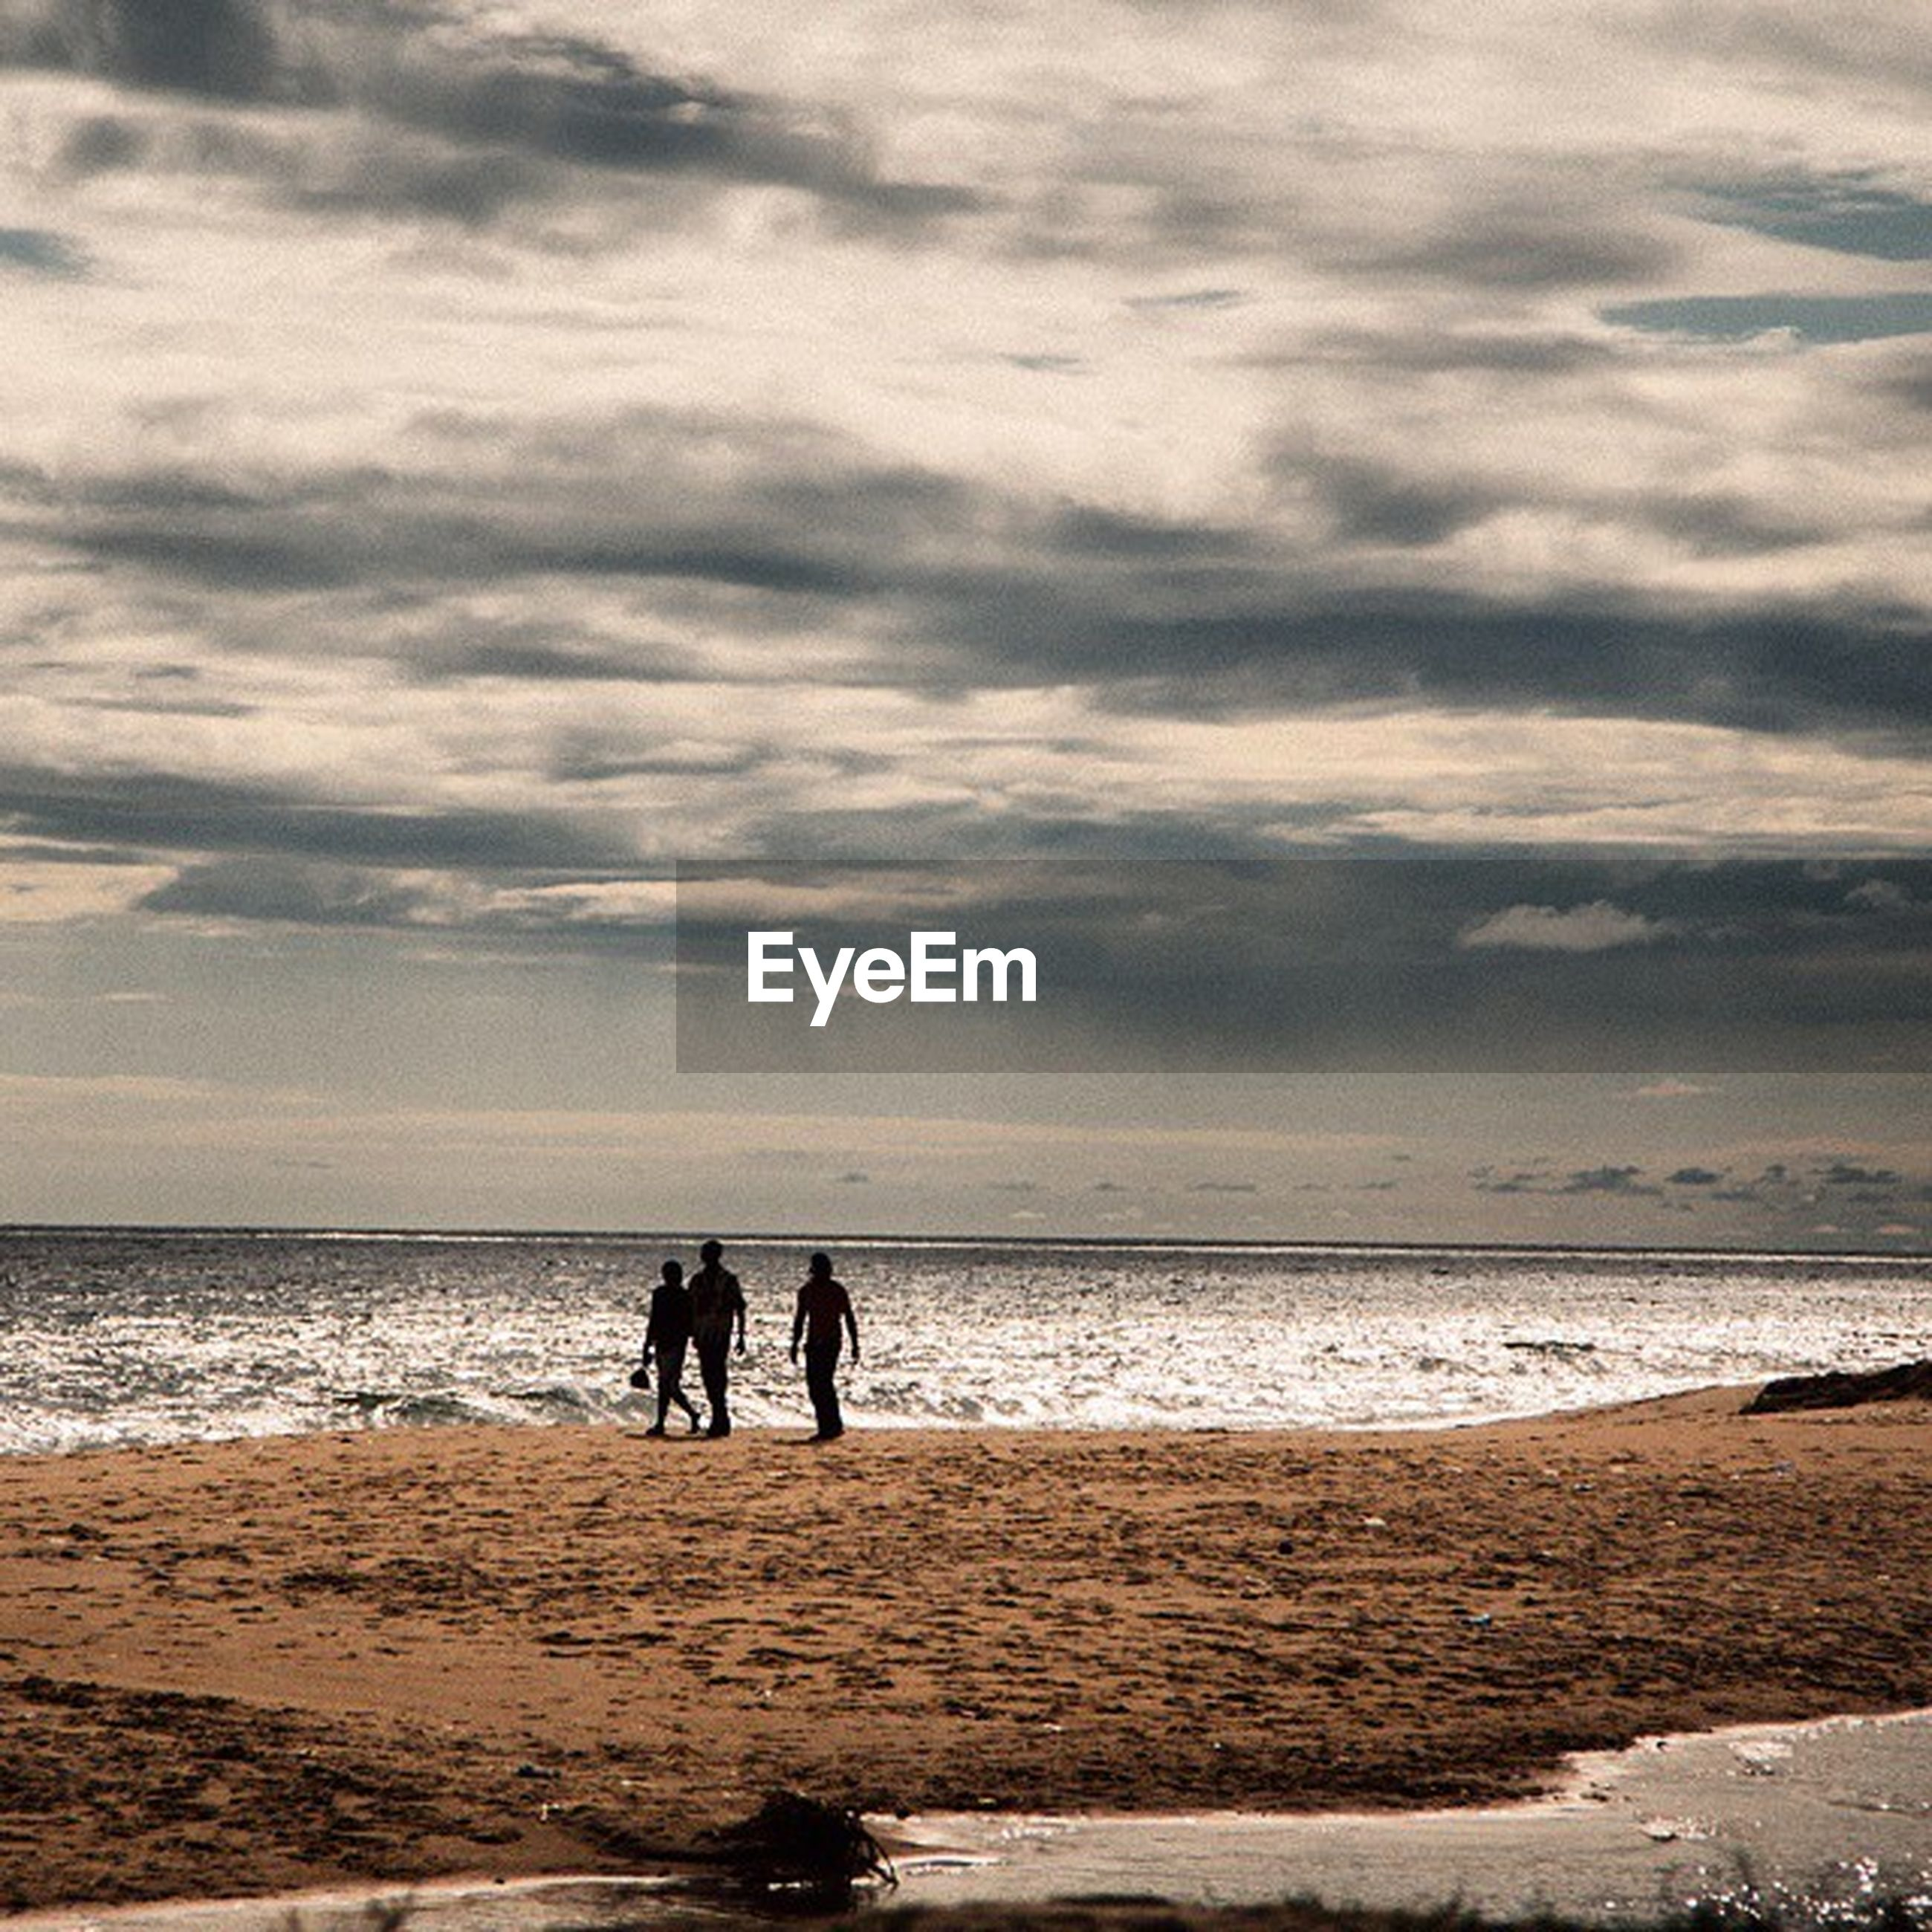 sea, beach, horizon over water, water, shore, sky, silhouette, men, lifestyles, togetherness, leisure activity, sand, scenics, beauty in nature, vacations, walking, tranquil scene, cloud - sky